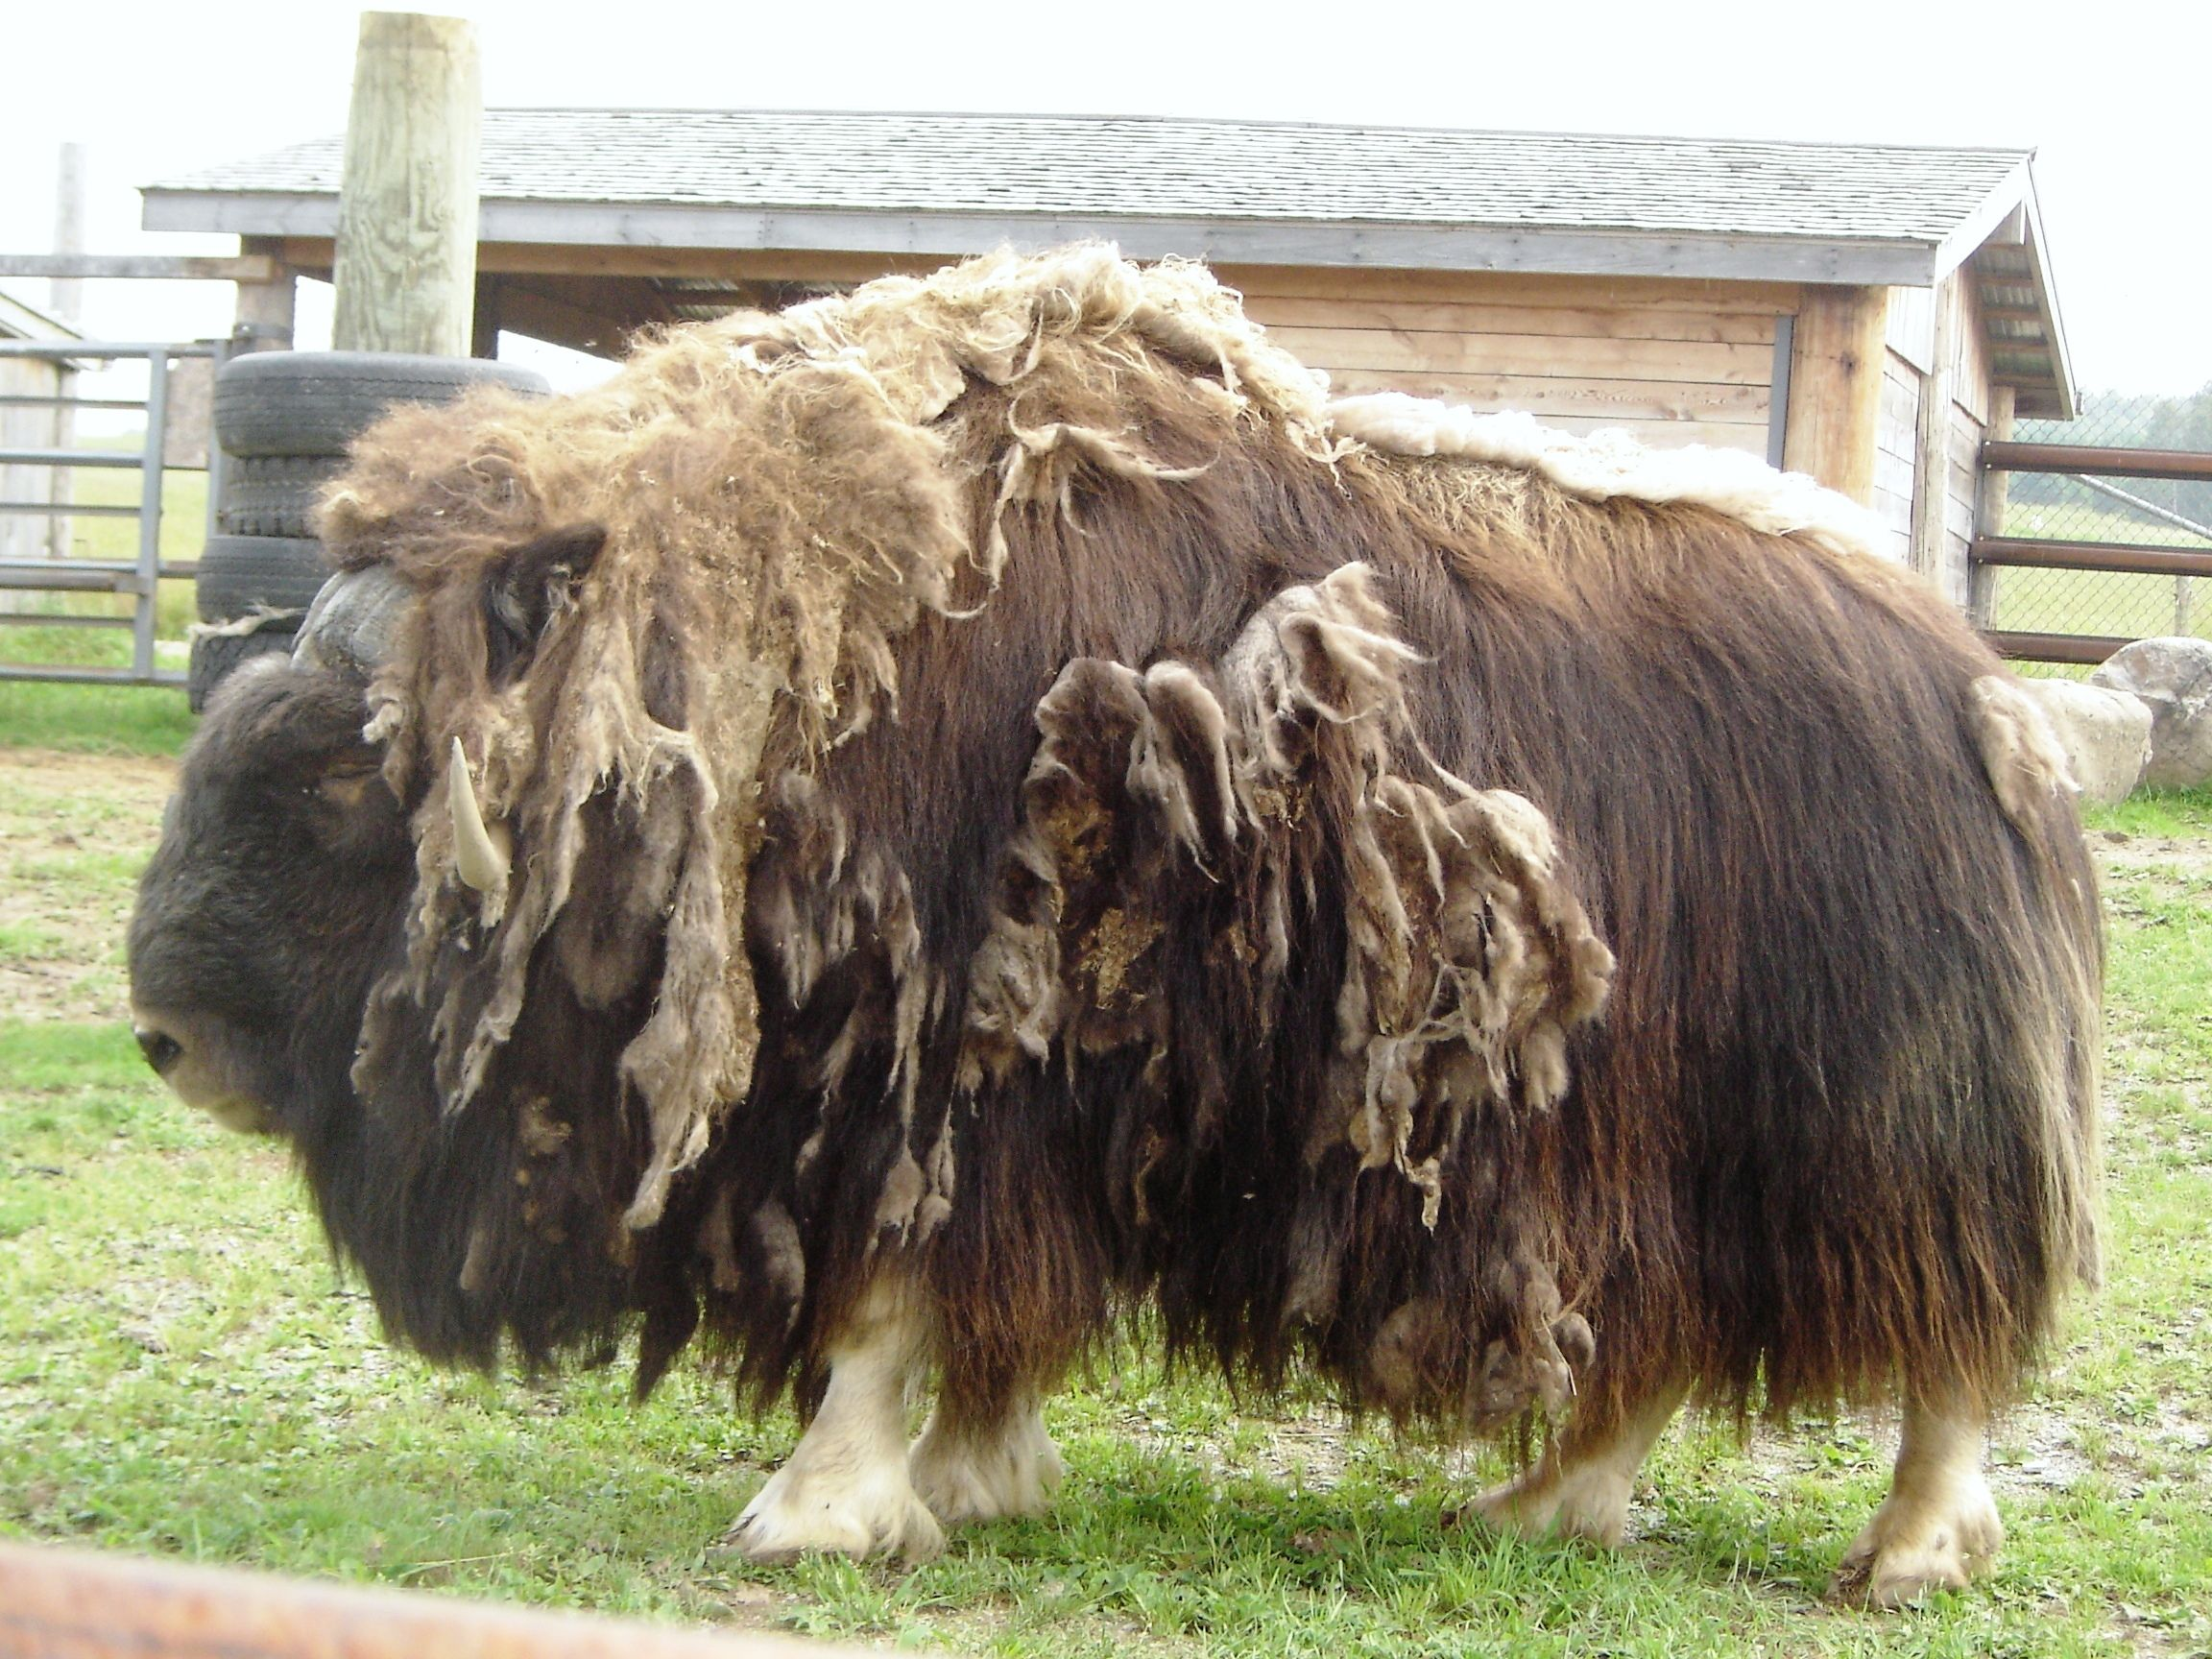 A Musk ox, which is shedding.